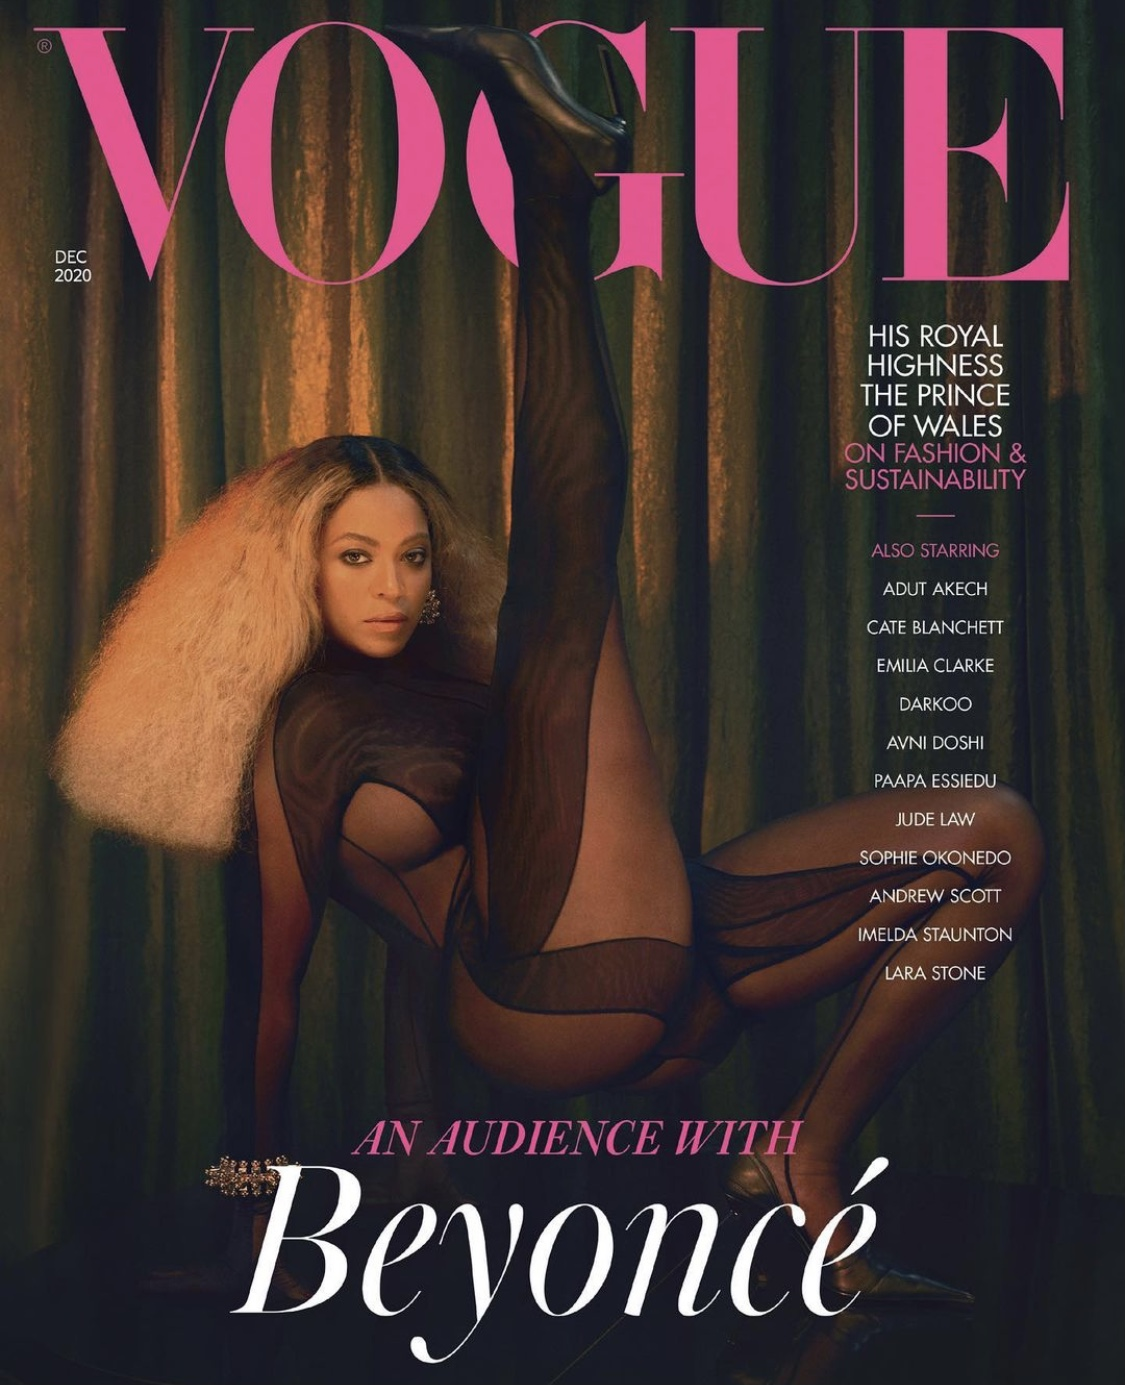 Beyoncé-British-Vogue-cover-December-issue